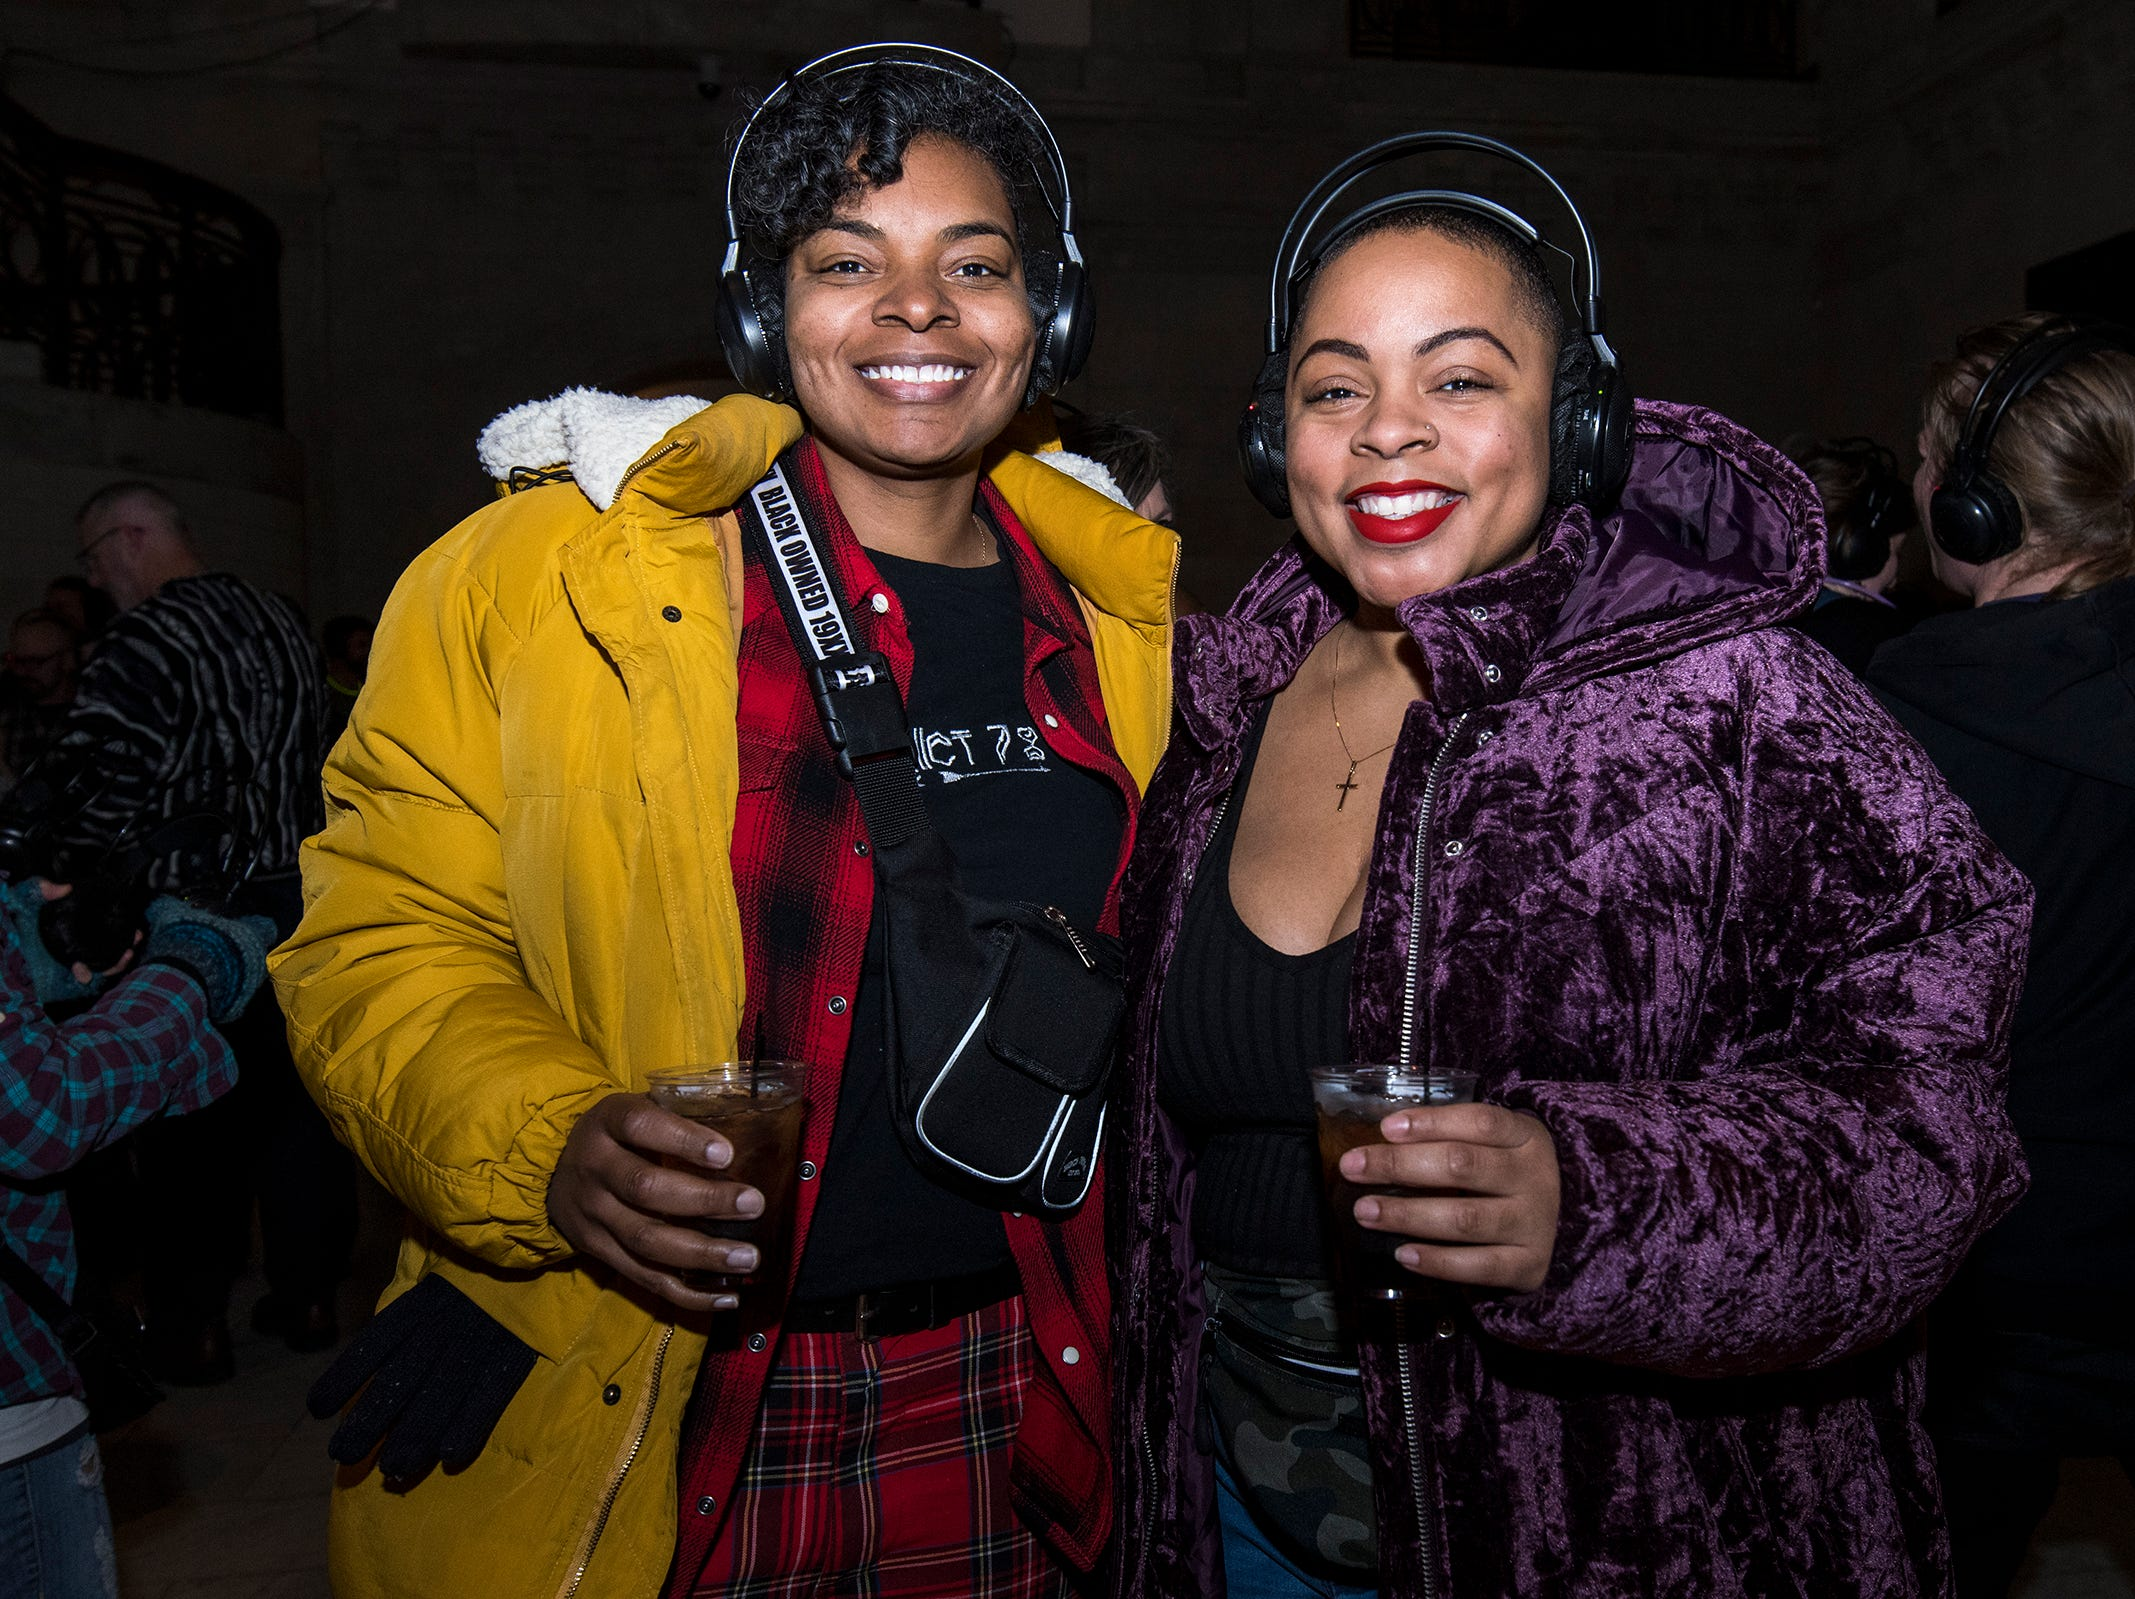 Erika and Brittani Gray attend a 90s-themed silent disco during Art After Dark at the Cincinnati Art Museum Friday, January 25, 2019 in Cincinnati, Ohio.